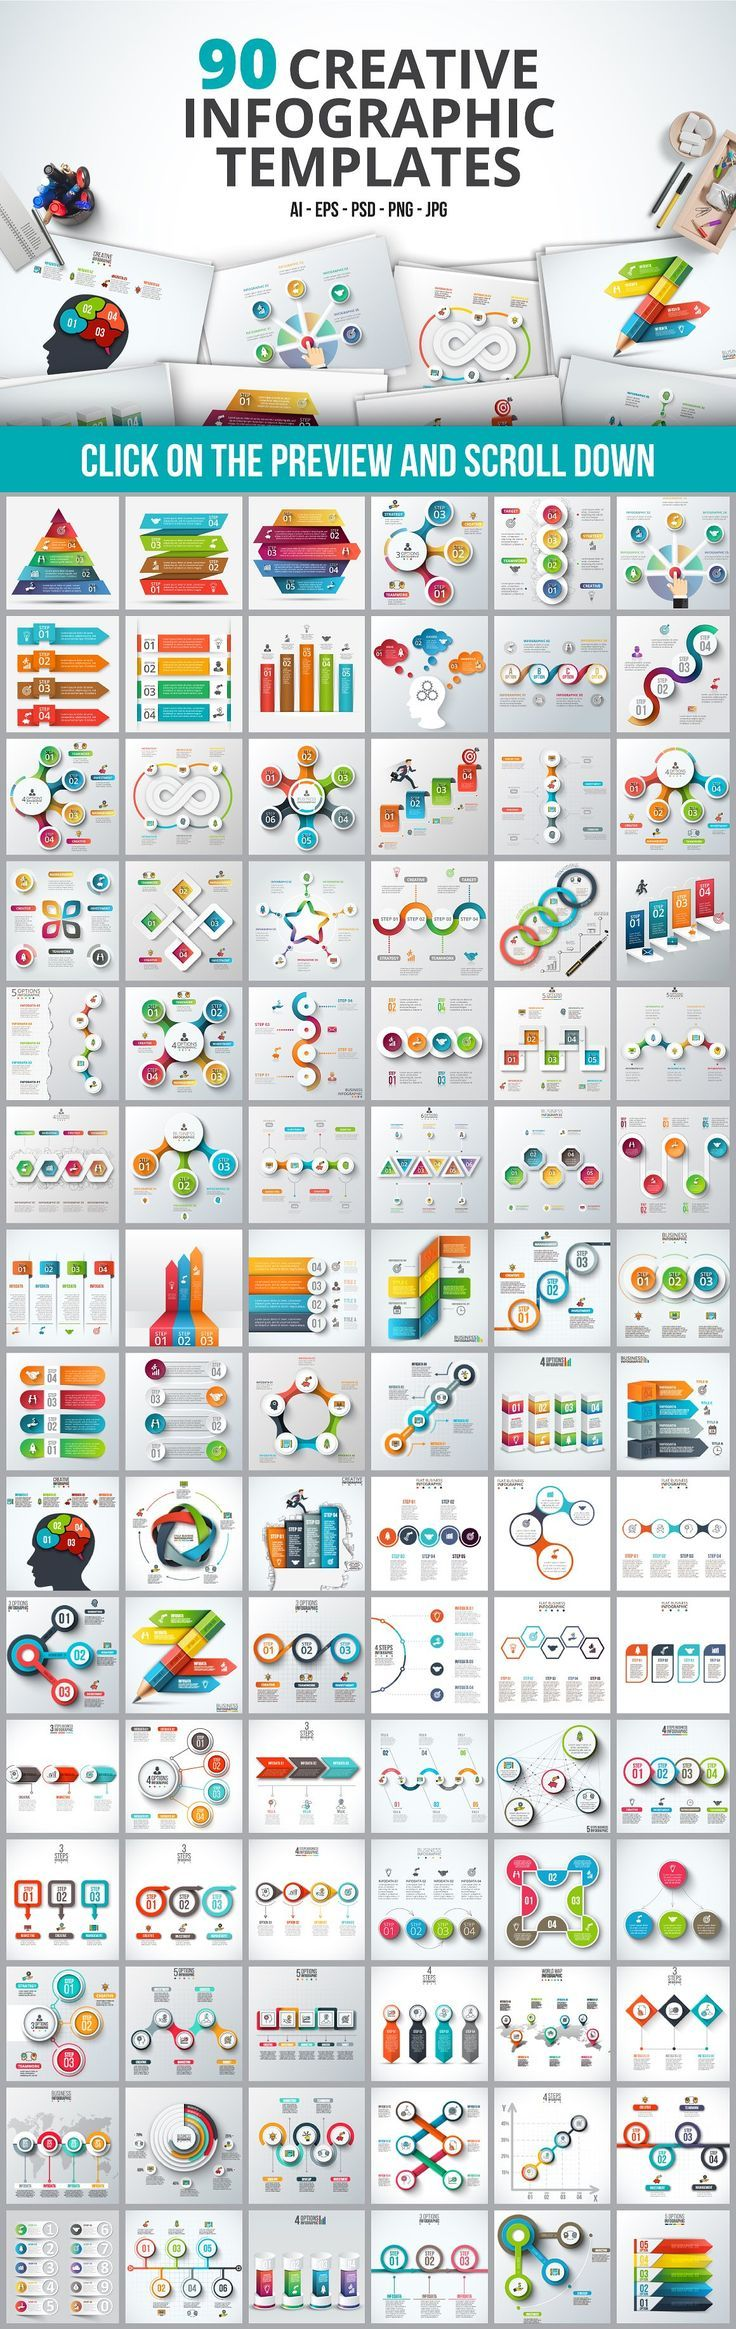 Business infographic : Infographic templates bundle by Abert